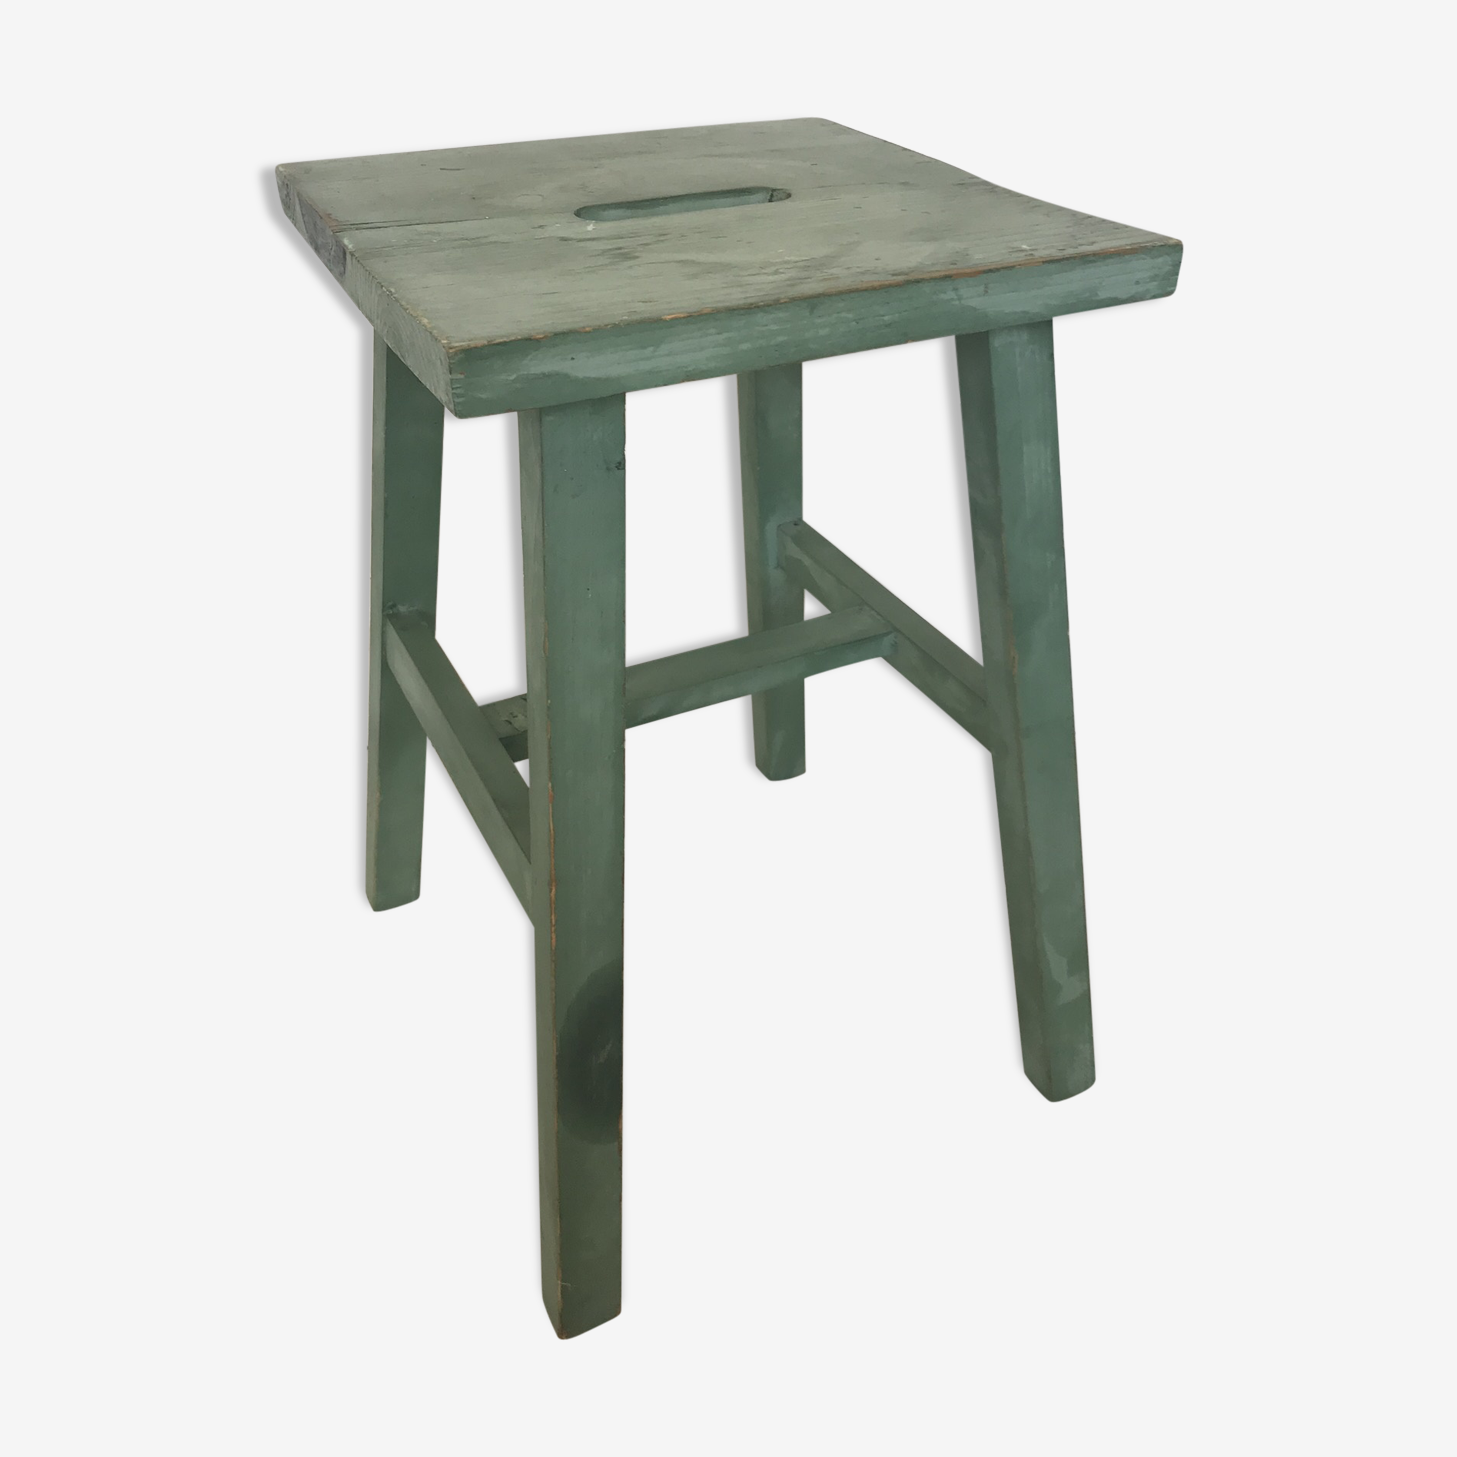 Green wooden stool